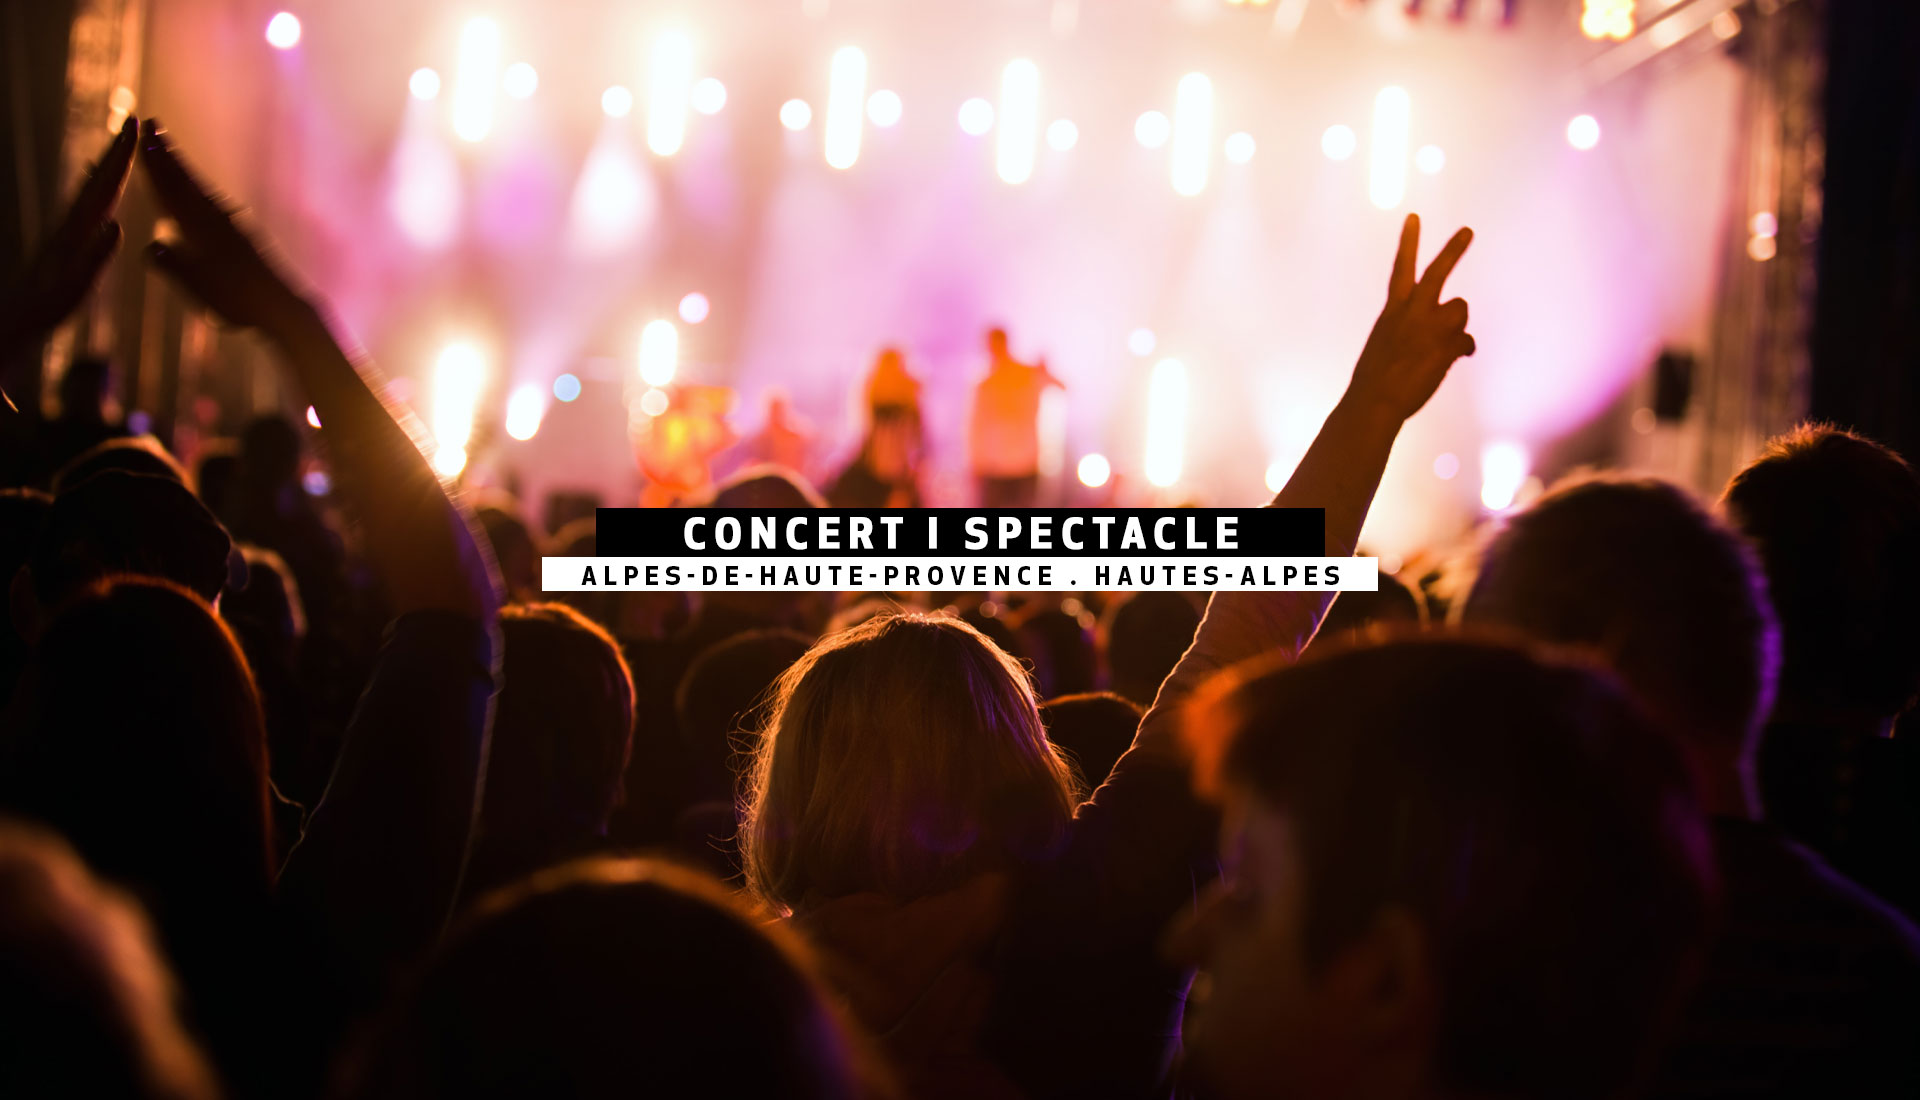 CONCERT | SPECTACLE